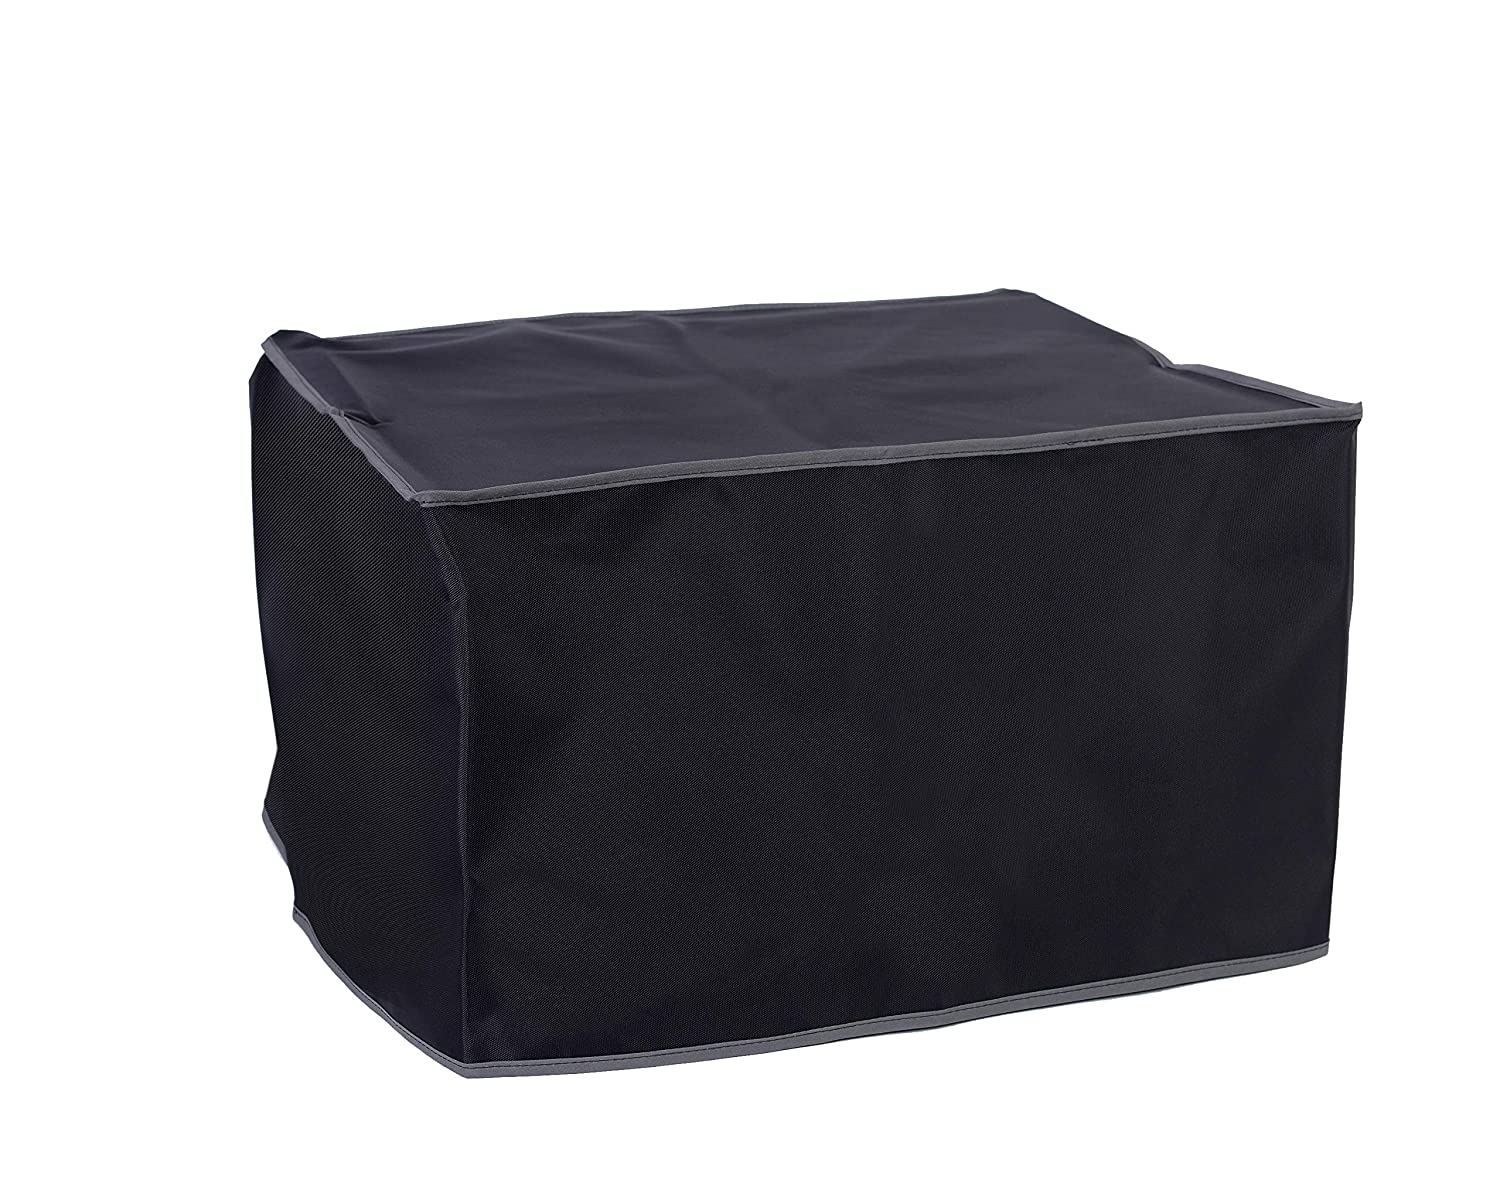 Black Nylon Anti Static Cover Dimensions 17.3W x 13.5D x 10.9H by The Perfect Dust Cover The Perfect Dust Cover Strong Cover Compatible with HP OfficeJet Pro 9010 All-in-One Wireless Printer